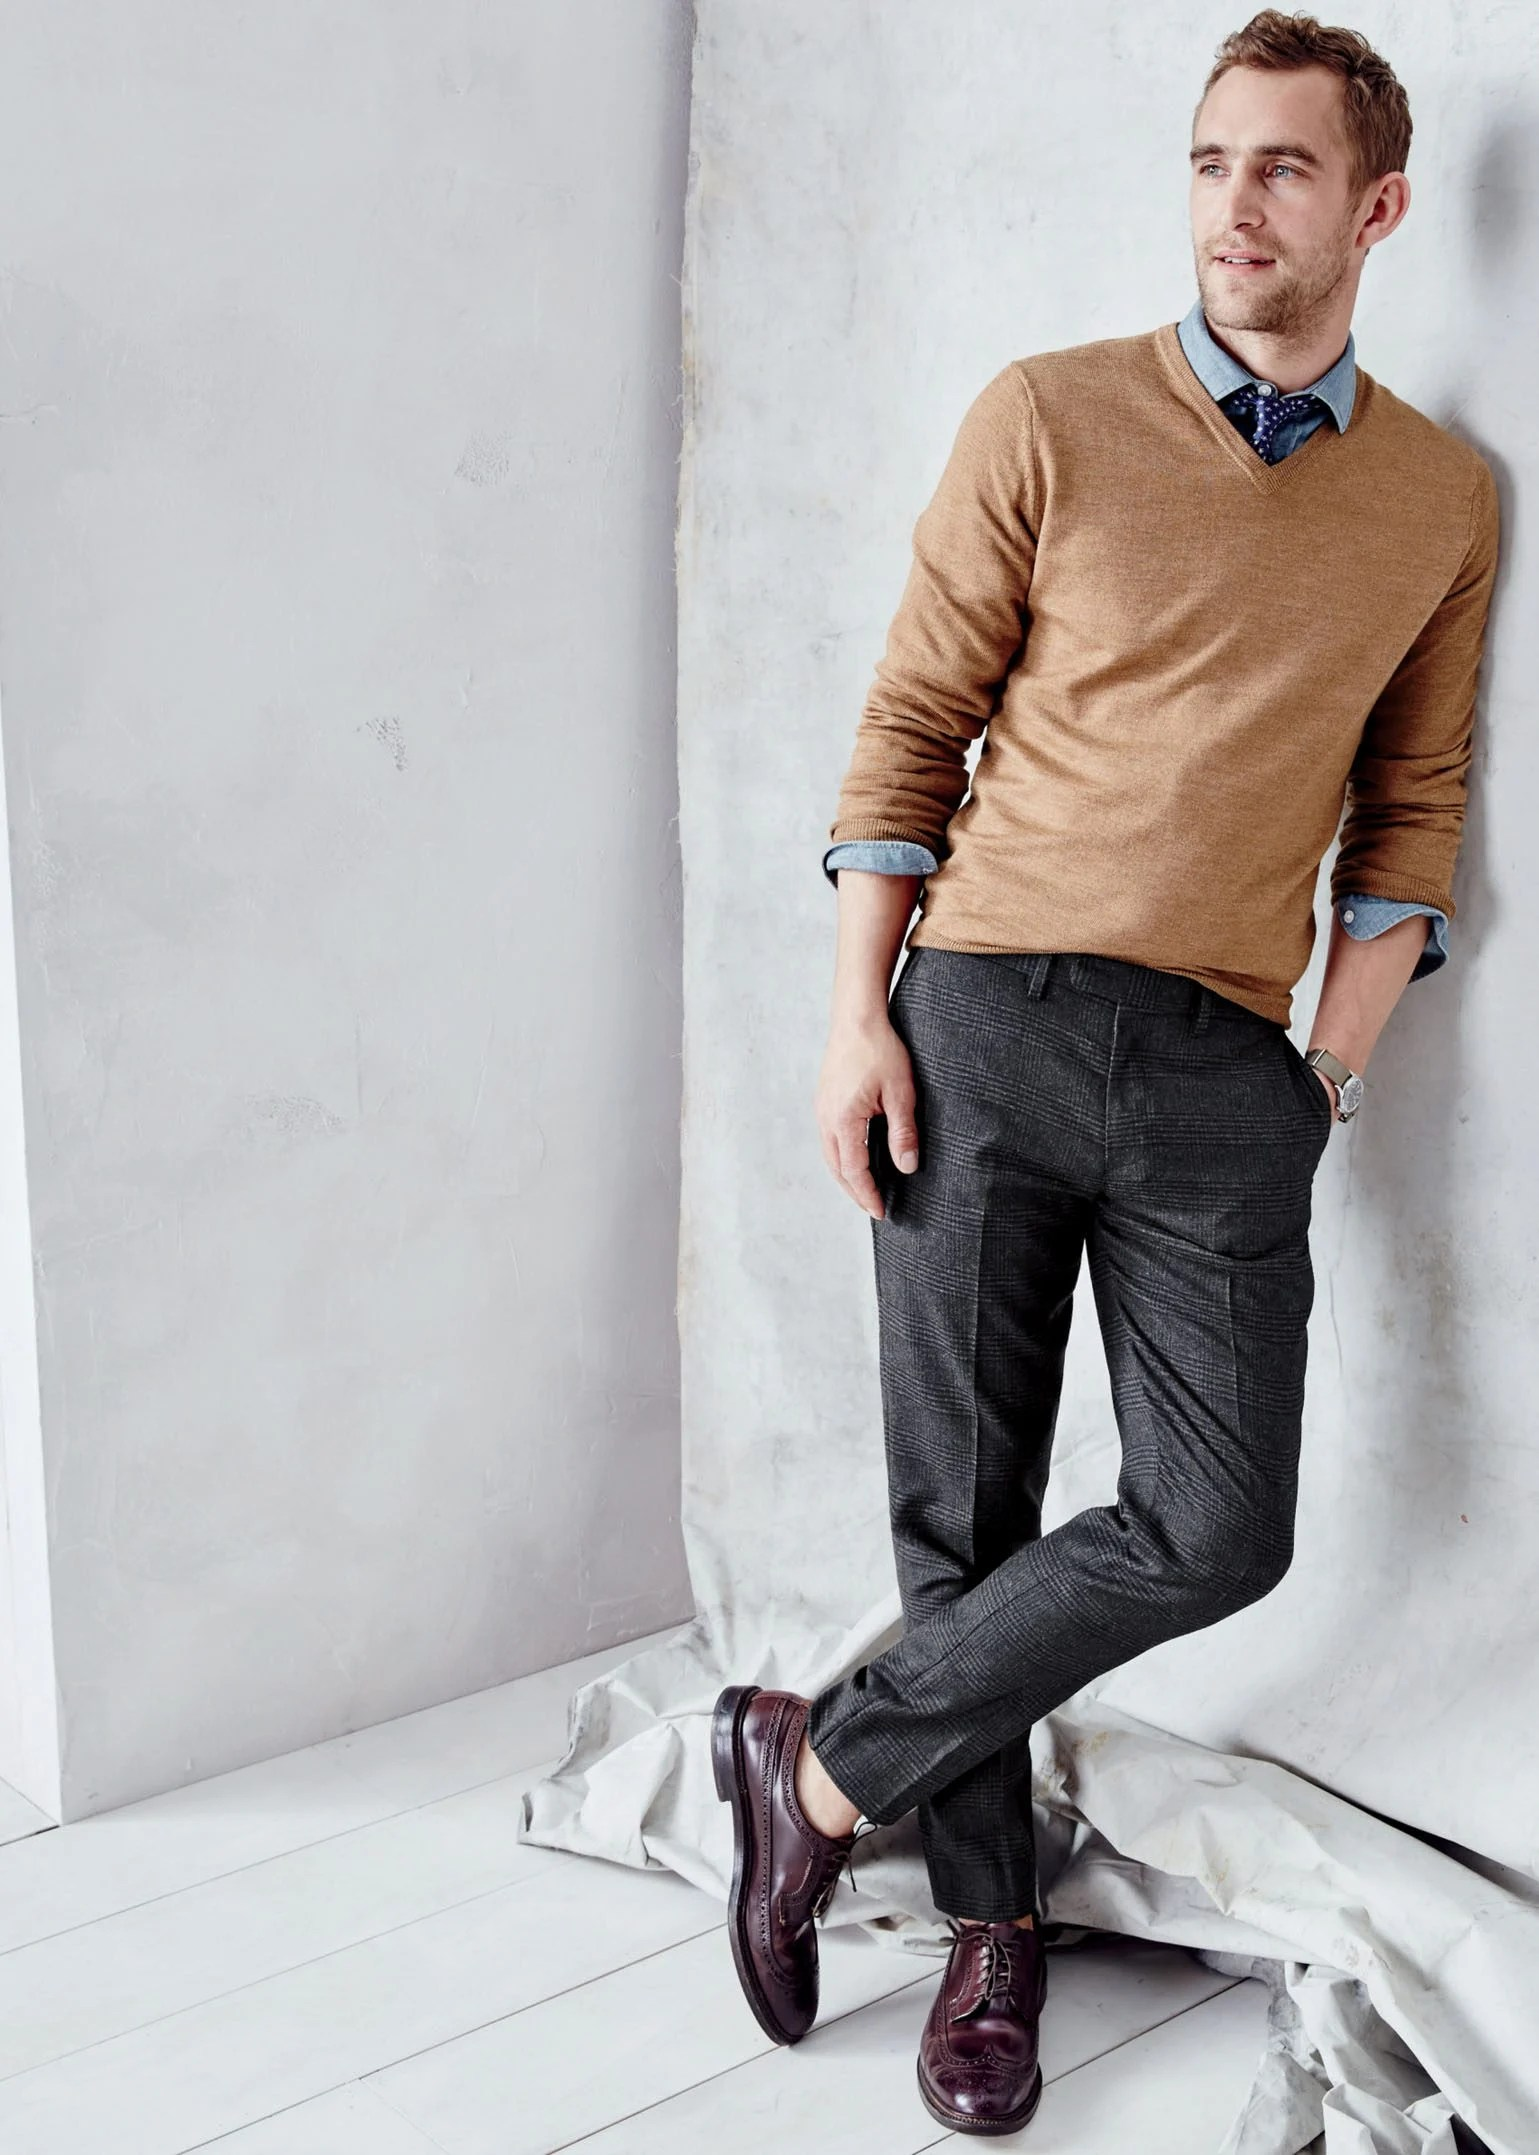 Man wearing a brown J. Crew v-neck sweater